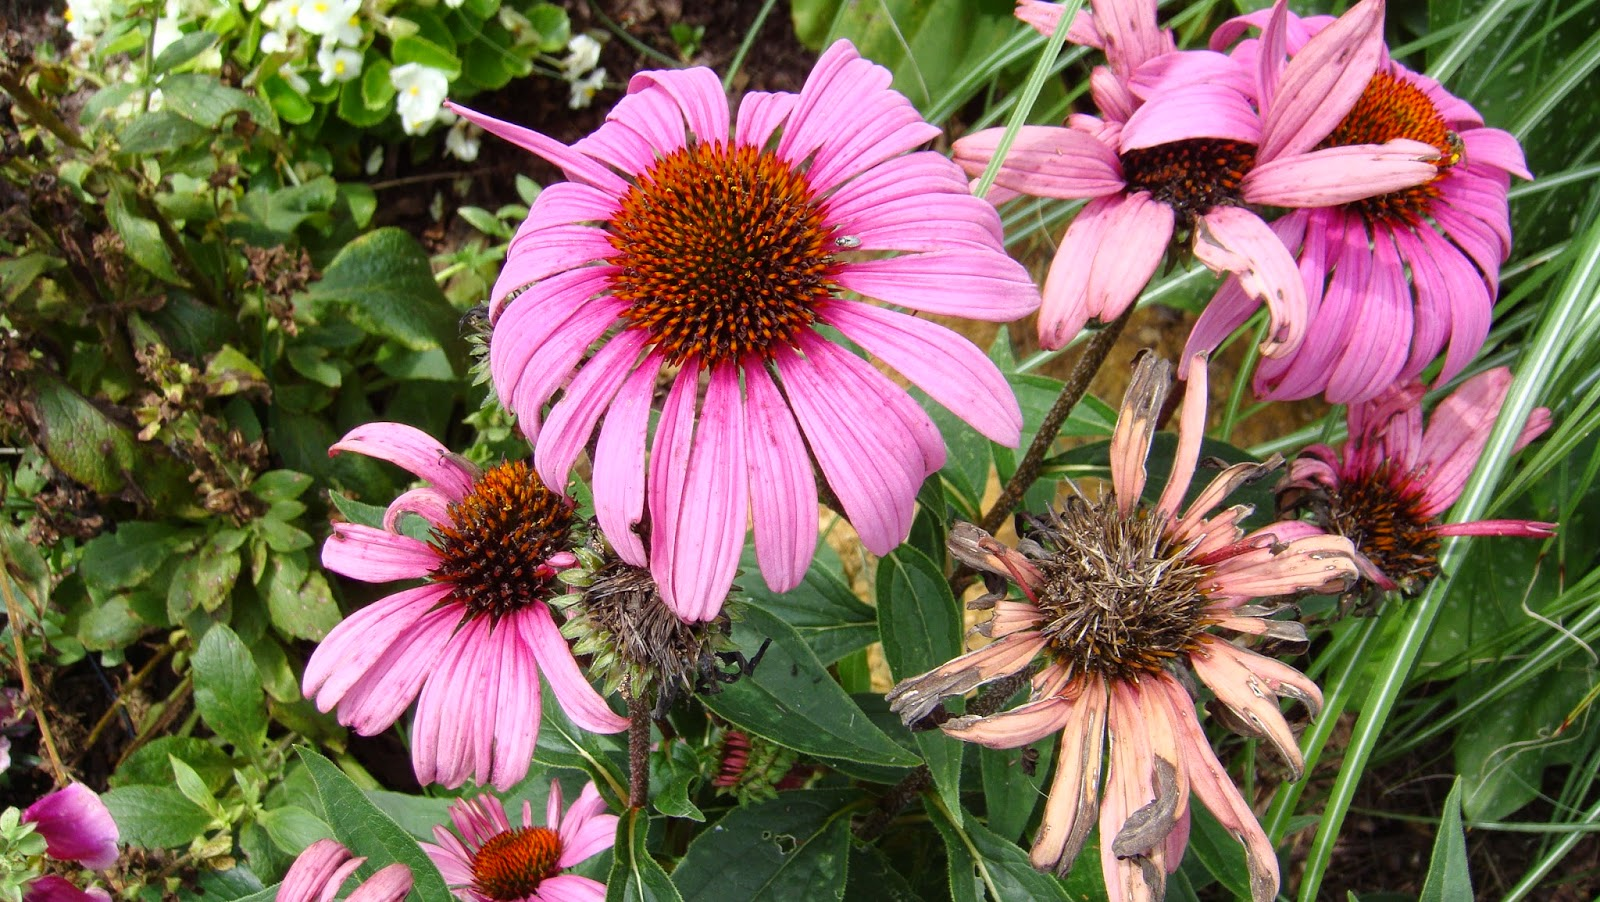 Line Drawing Coneflower : Crafting diy projects decorating